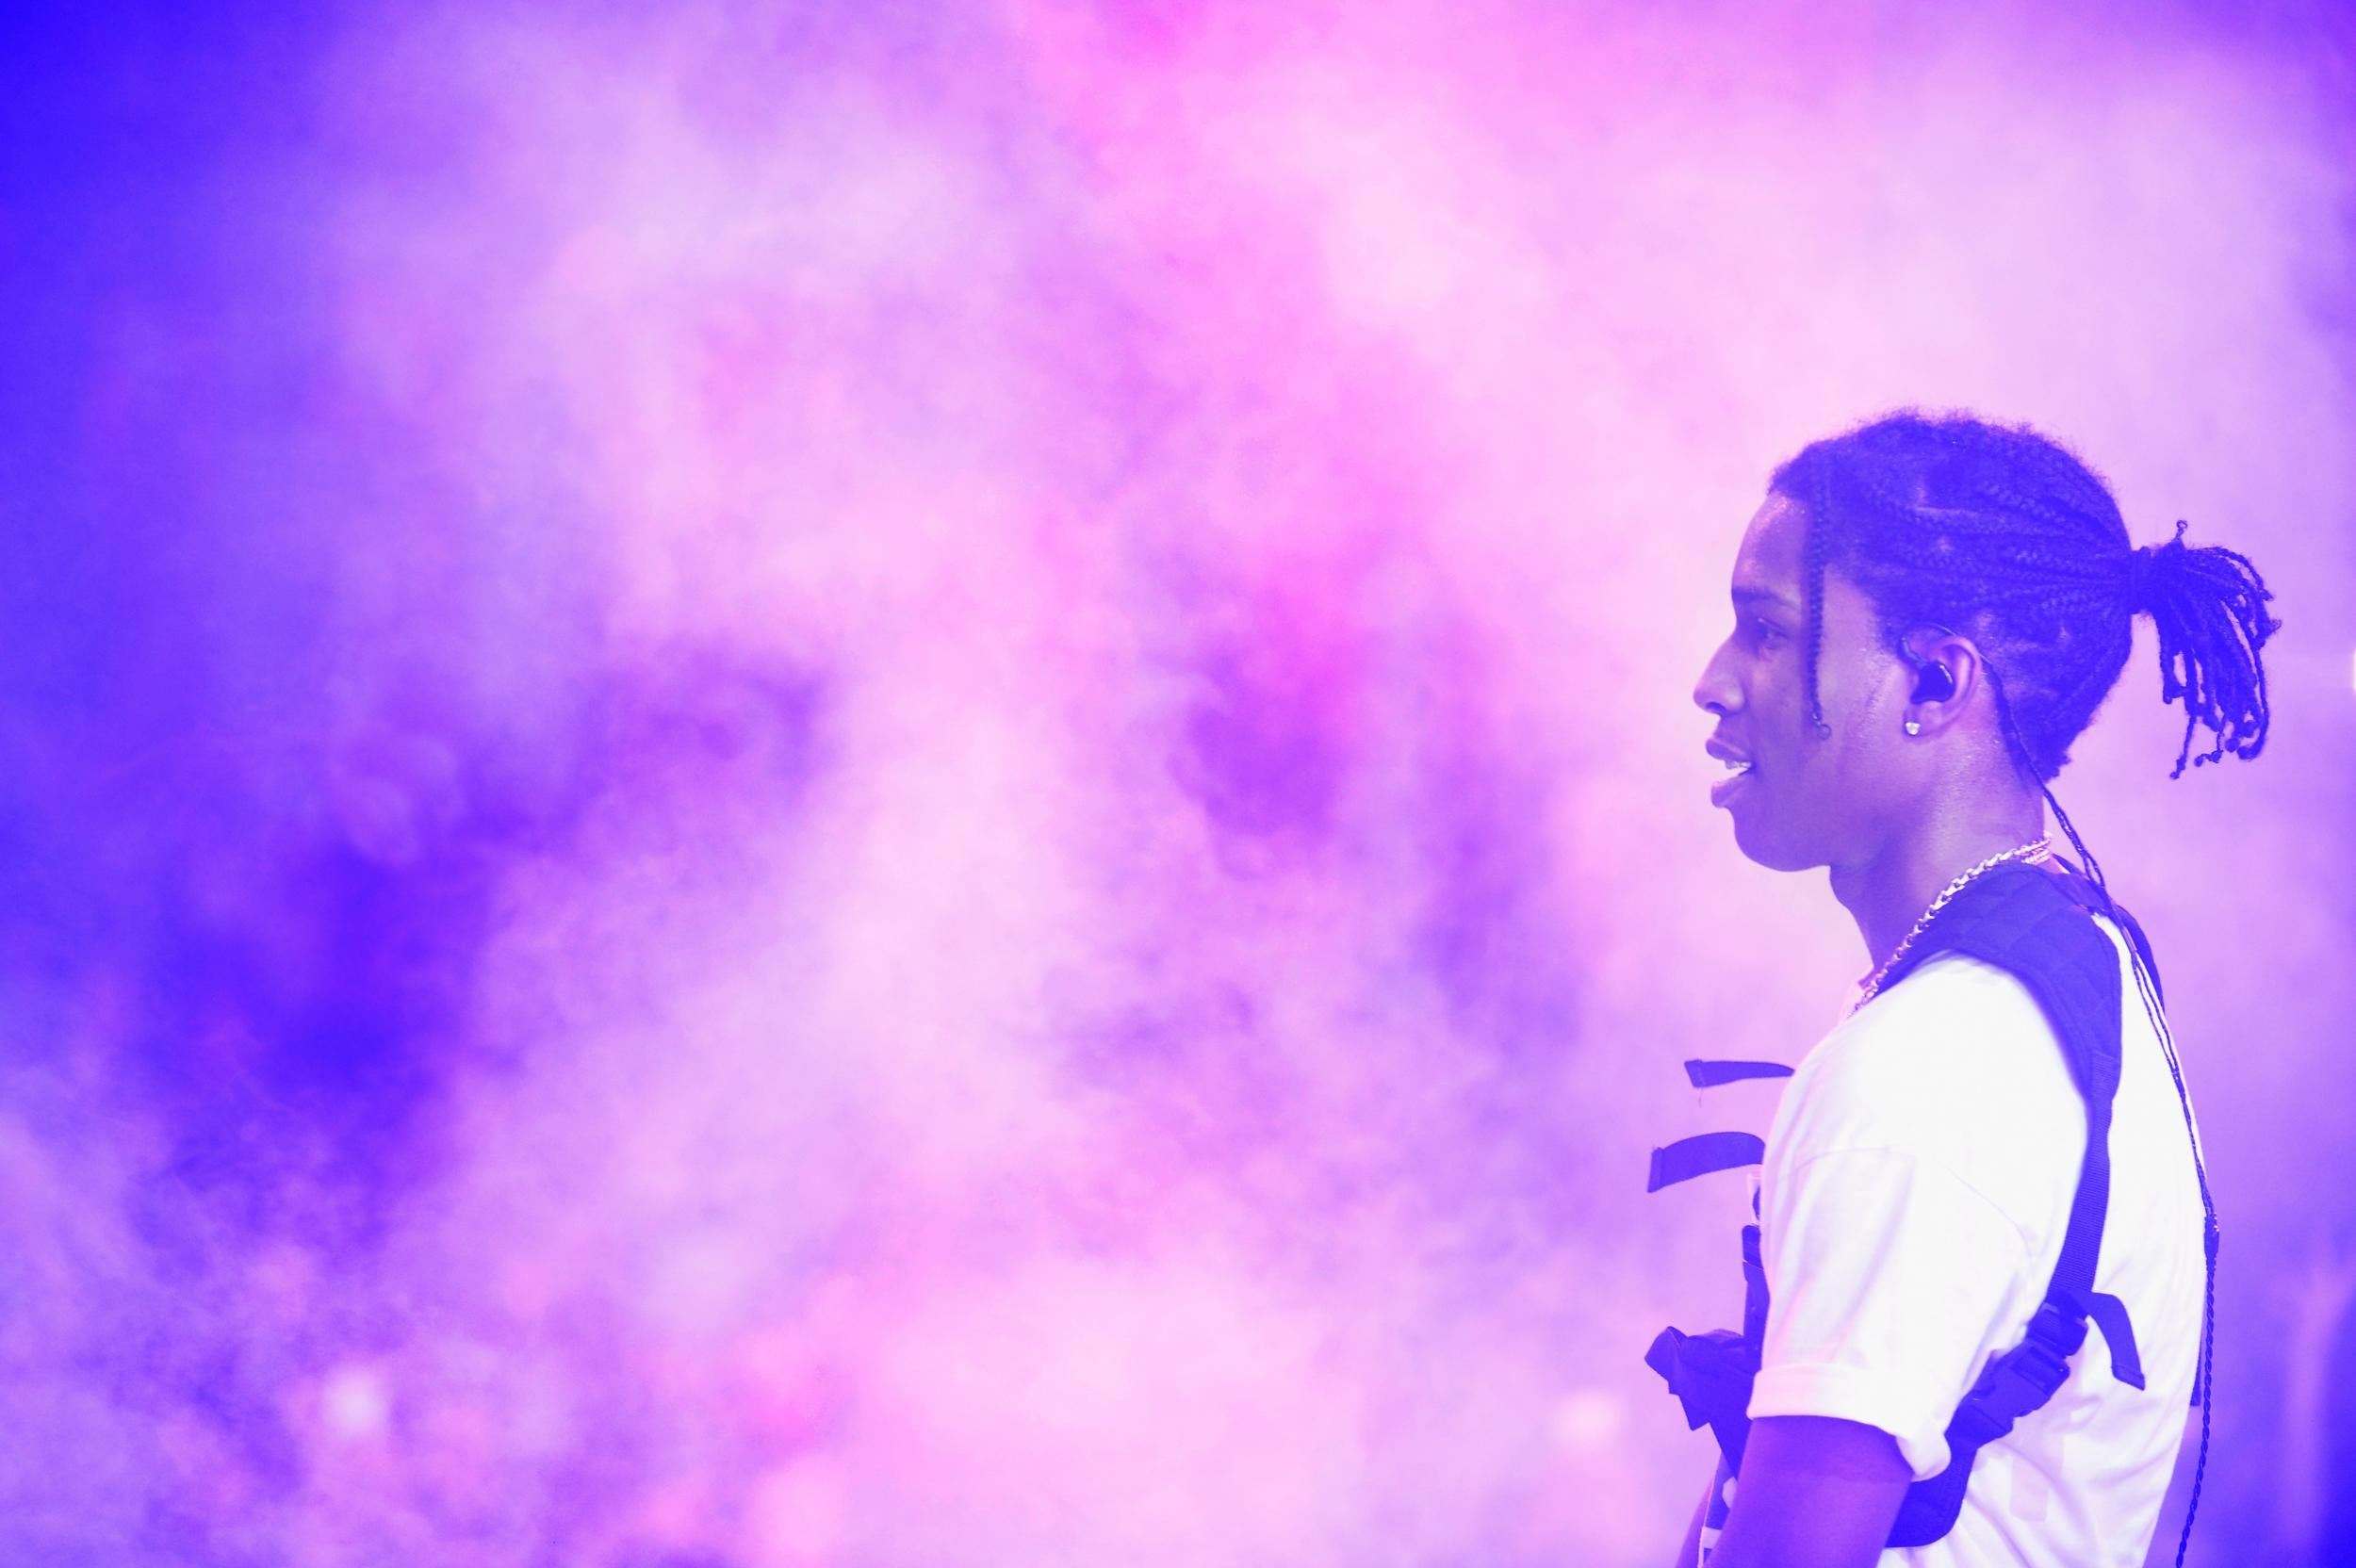 A$AP Rocky: Swedish prosectors ask for more time in Stockholm assault case